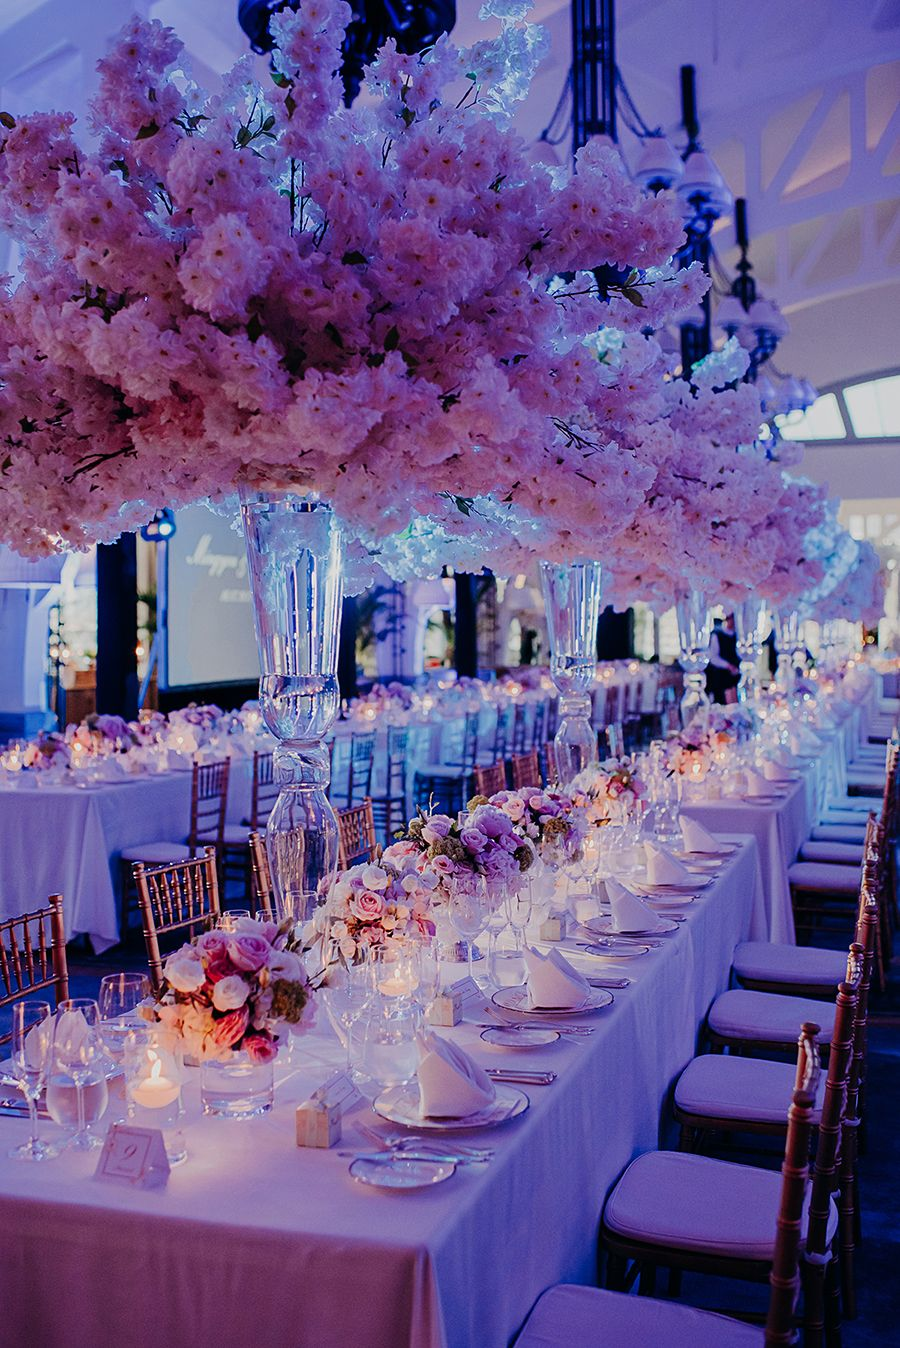 Real Crazy Rich Asian Weddings Part 1 Wedding Centerpieces Wedding Cake Purple Flowers Wedding Cakes With Flowers